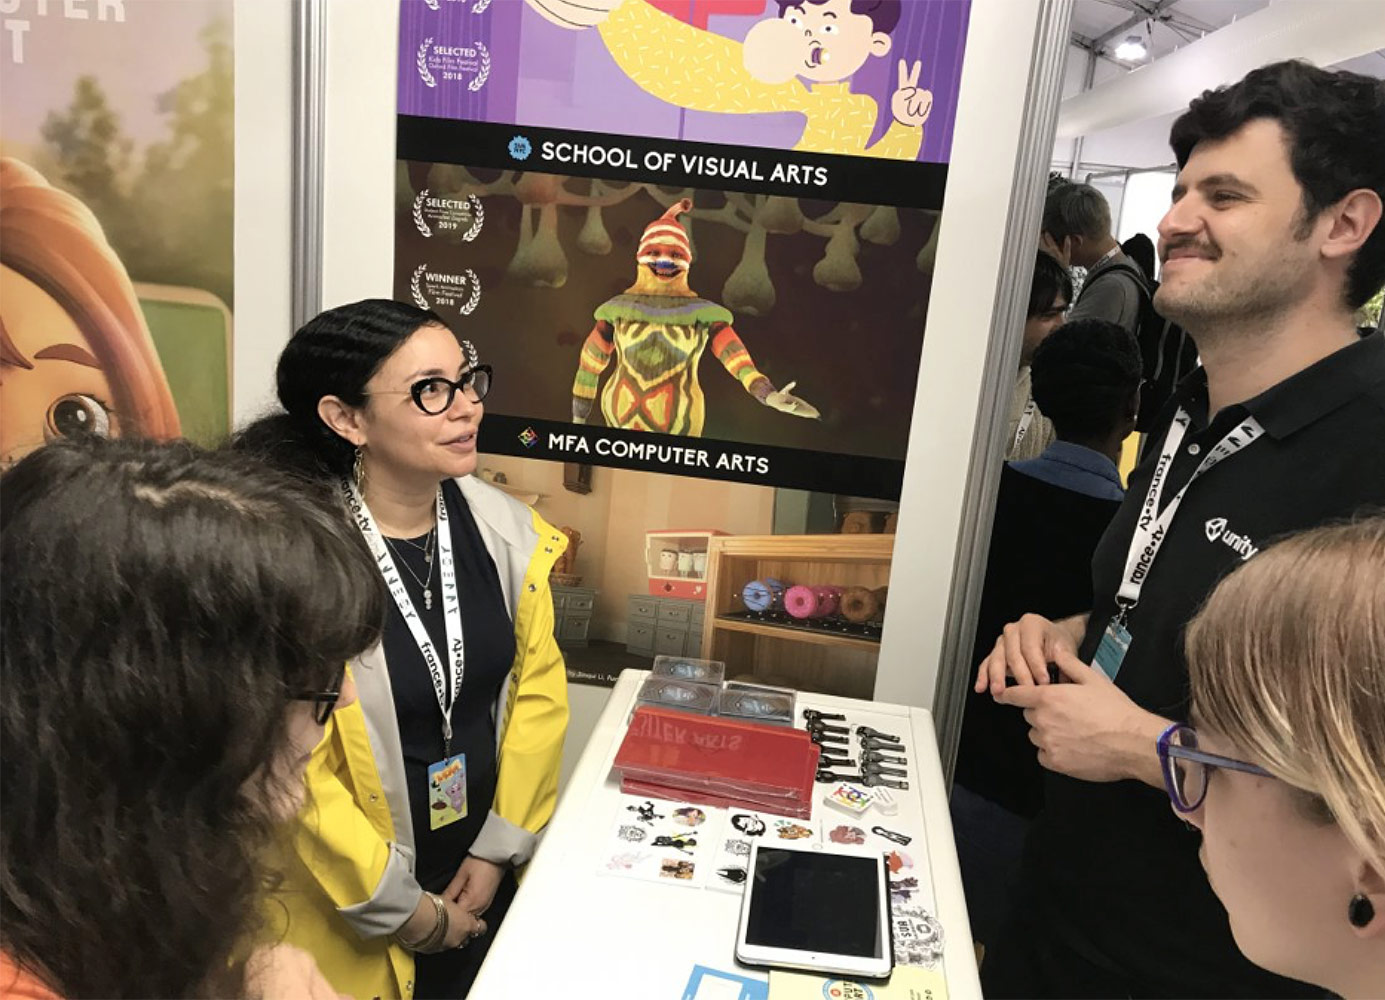 The SVA booth at the 2019 Annecy International Animation Festival. Photo by Hsiang Chin Moe.